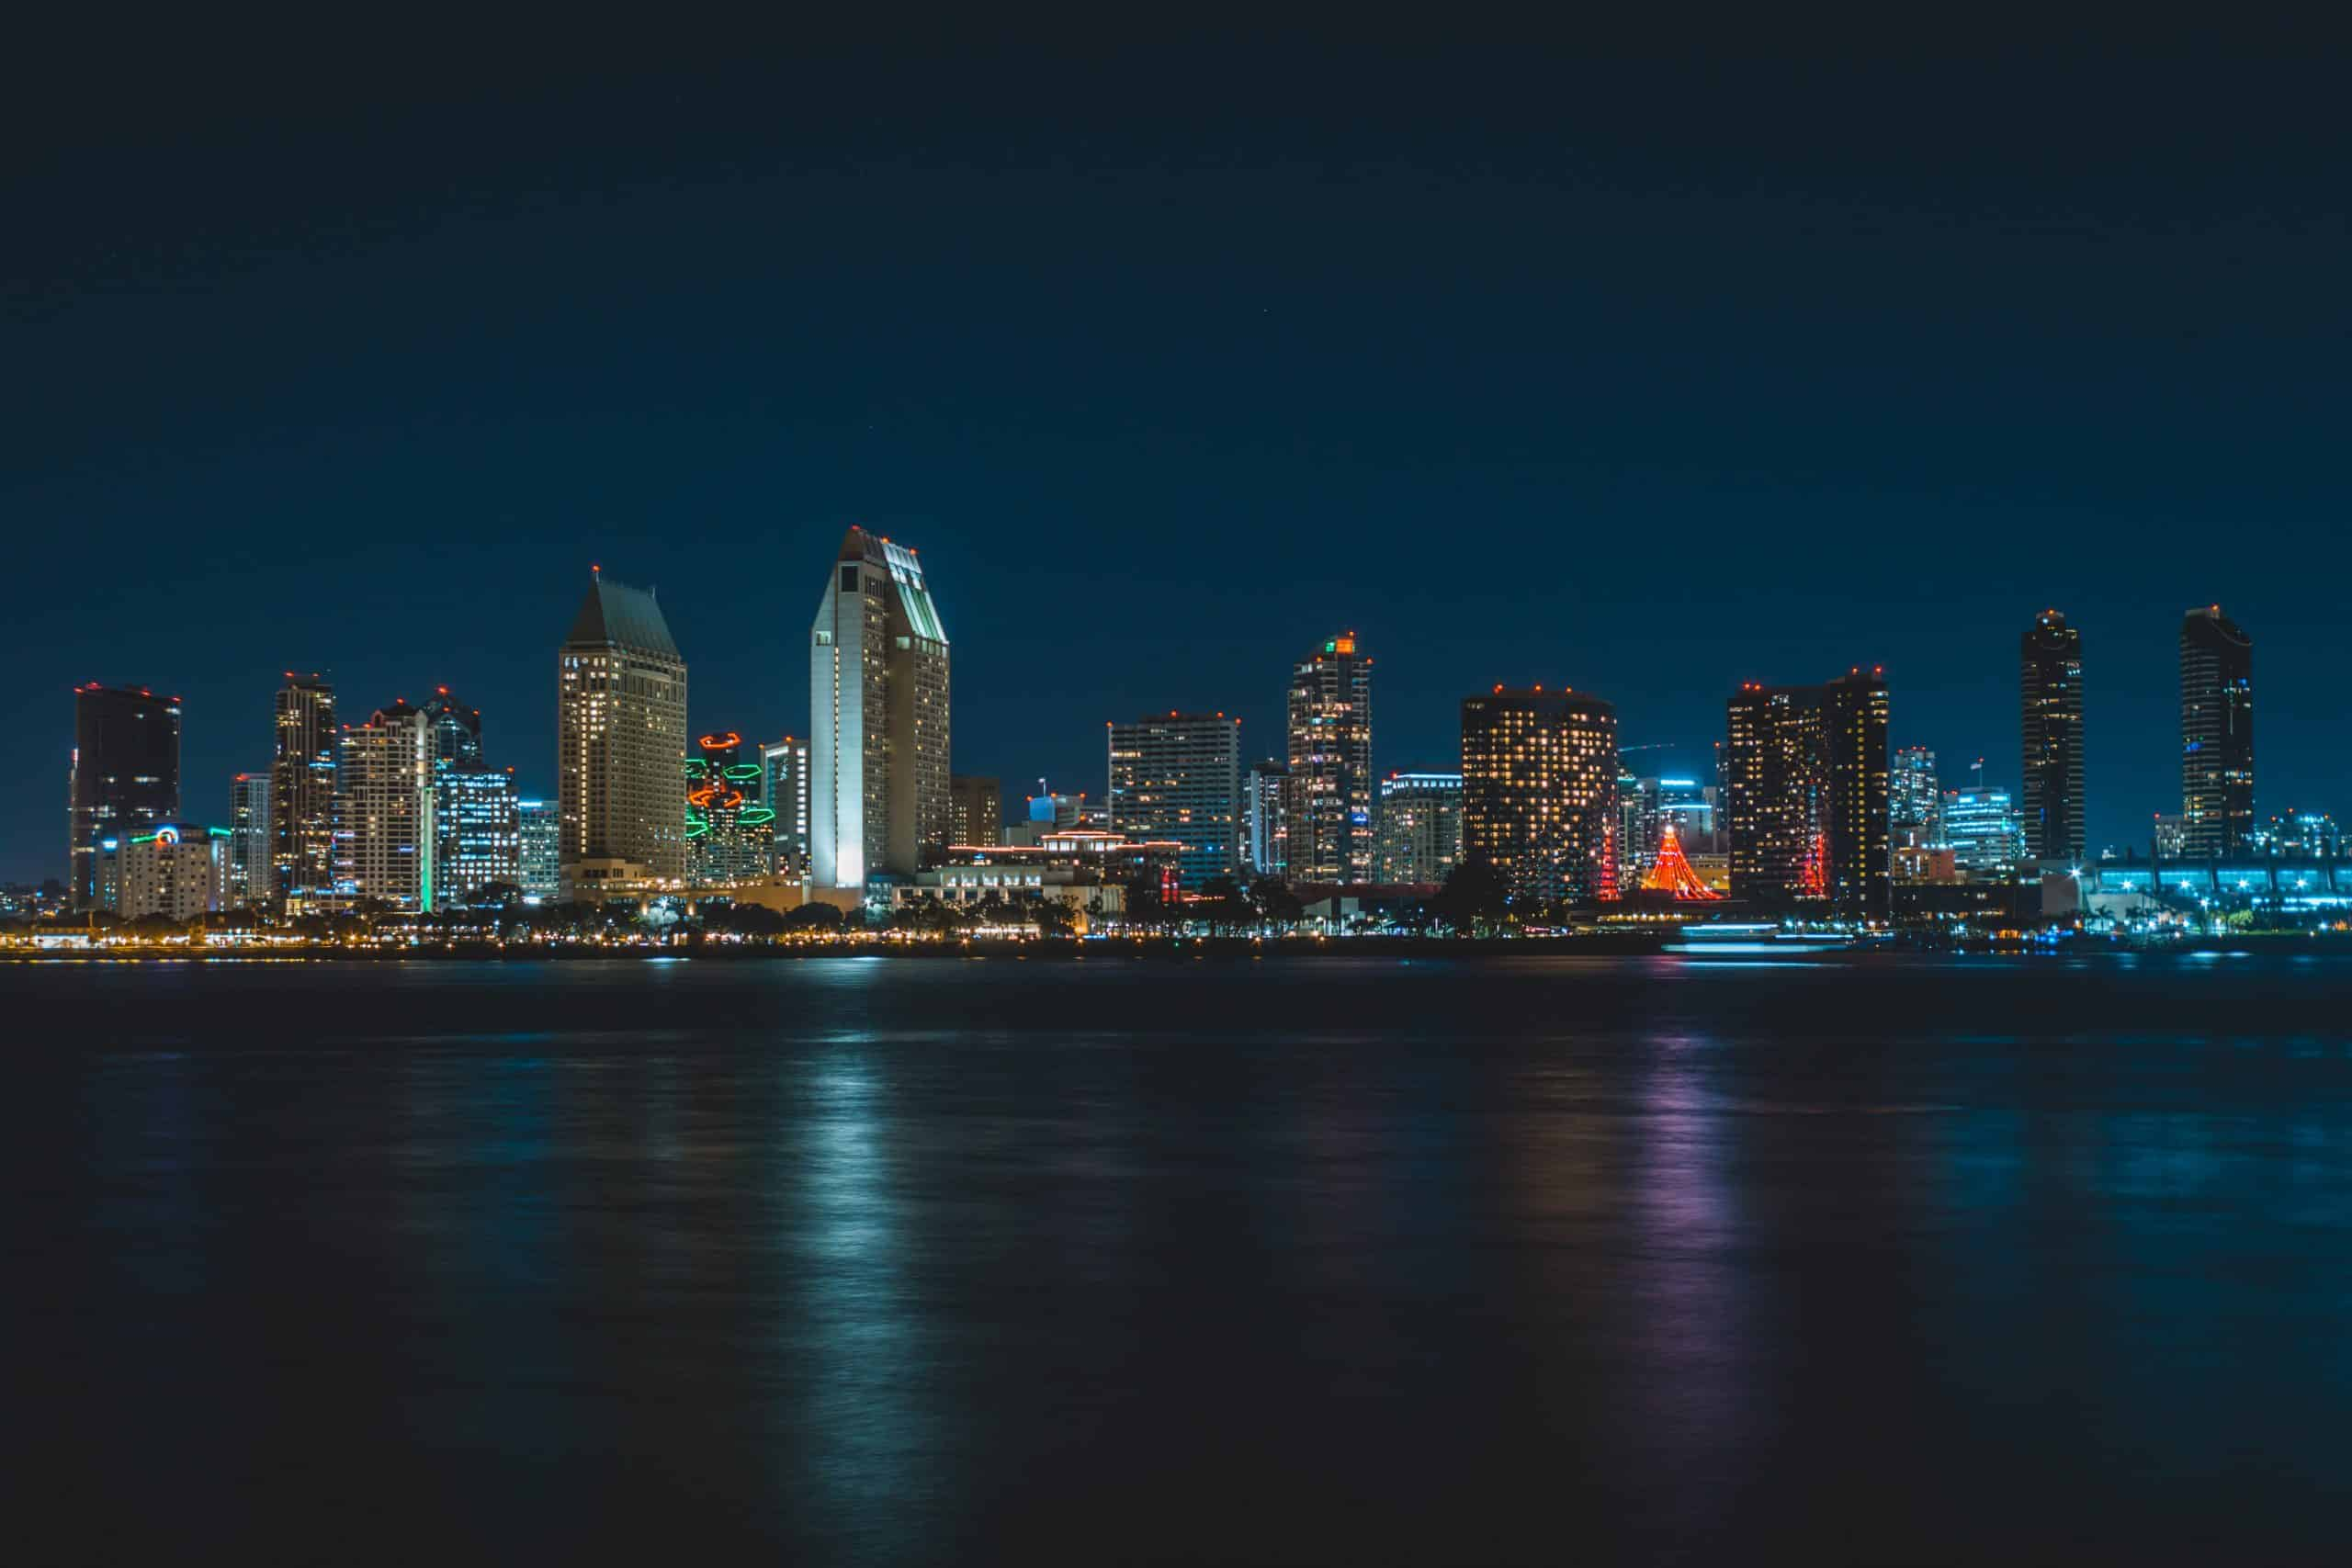 How To Get From Tijuana Airport To San Diego - All Possible Ways, cheapest way from Tijuana airport to San Diego, Tijuana airport to San Diego